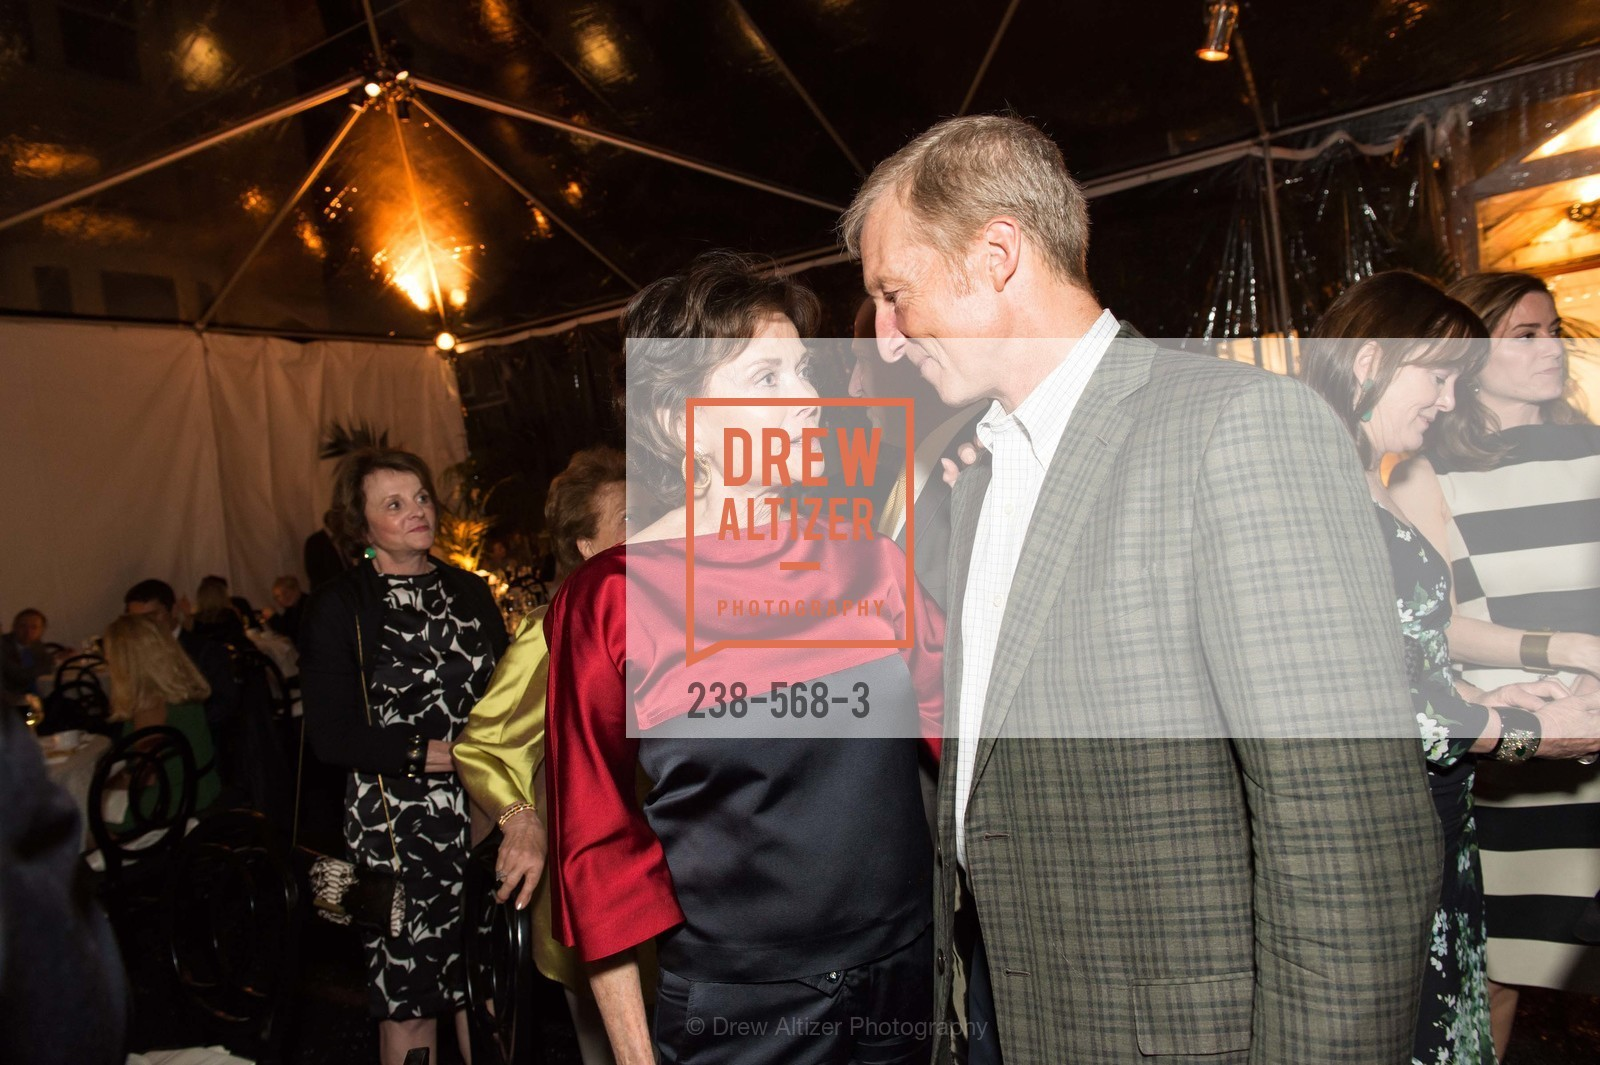 Kay Walker, Tom Steyer, SOTHEBY'S  Hosts a Private Viewing of Highlights from the Collection of MRS. PAUL MELLON, US, September 17th, 2014,Drew Altizer, Drew Altizer Photography, full-service event agency, private events, San Francisco photographer, photographer California